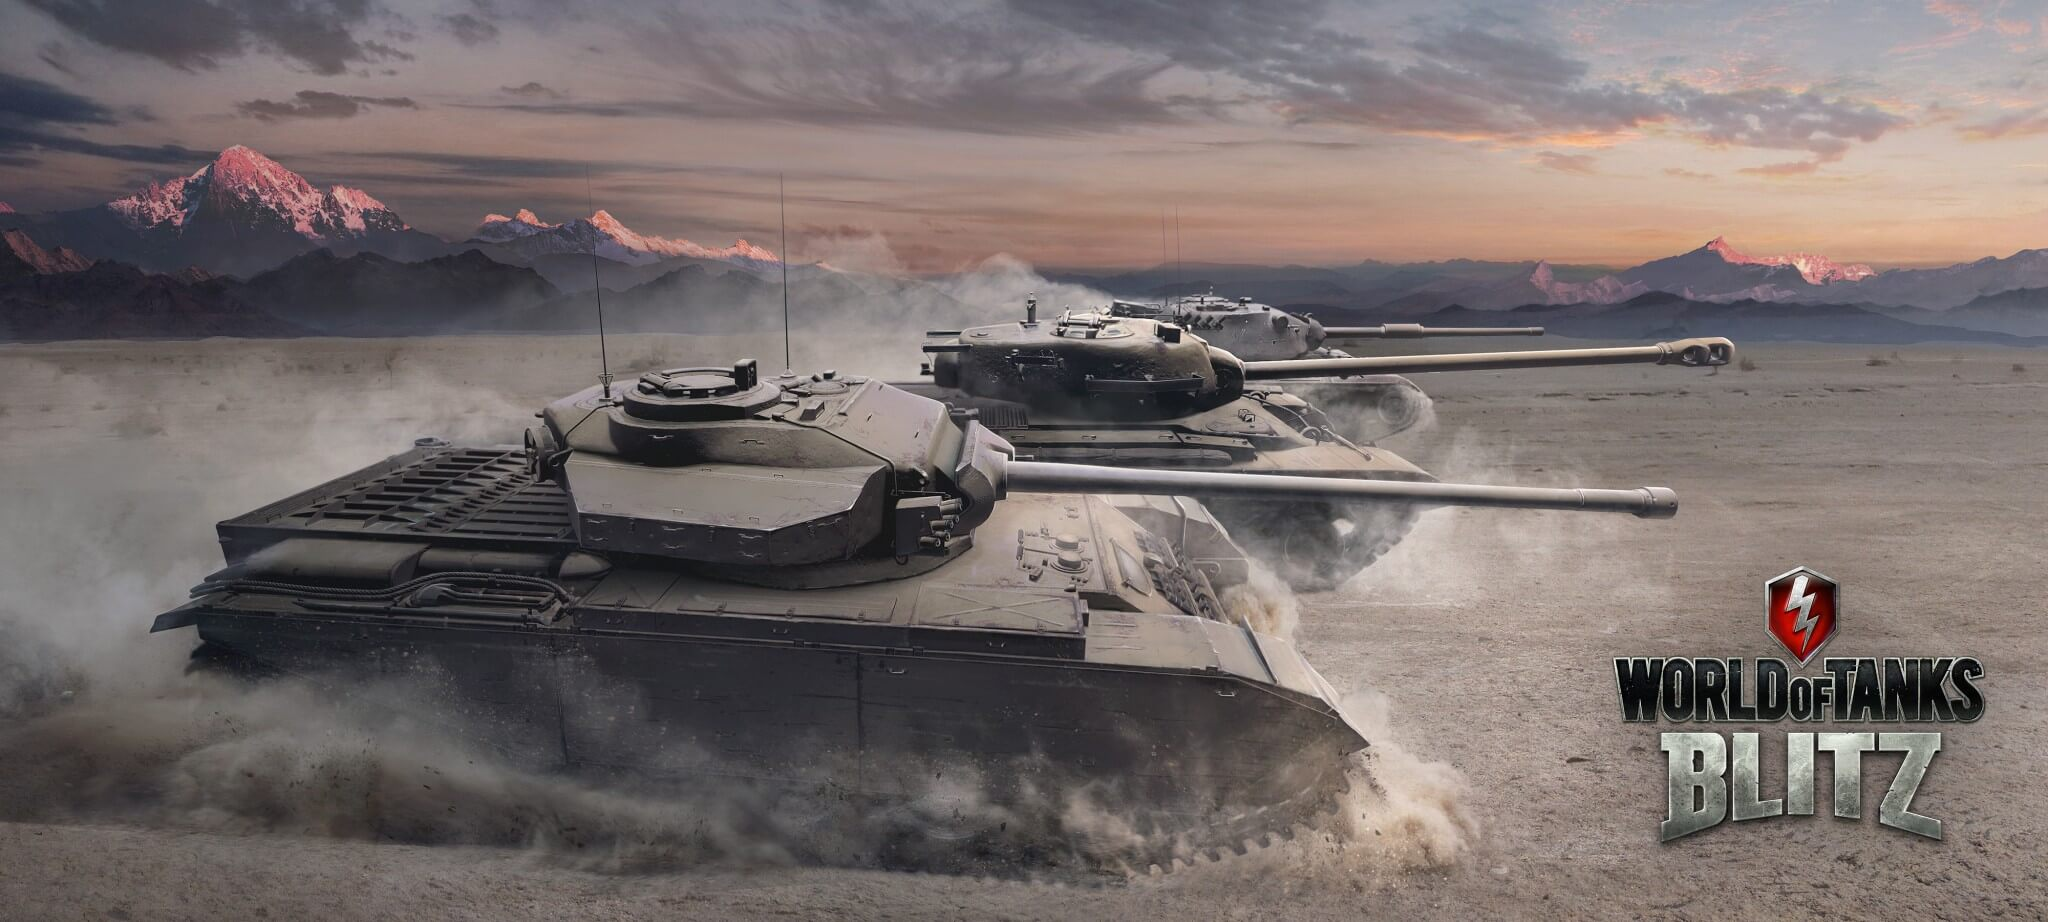 World Of Tanks Blitz OSX (Bildrechte bei wargaming.net)